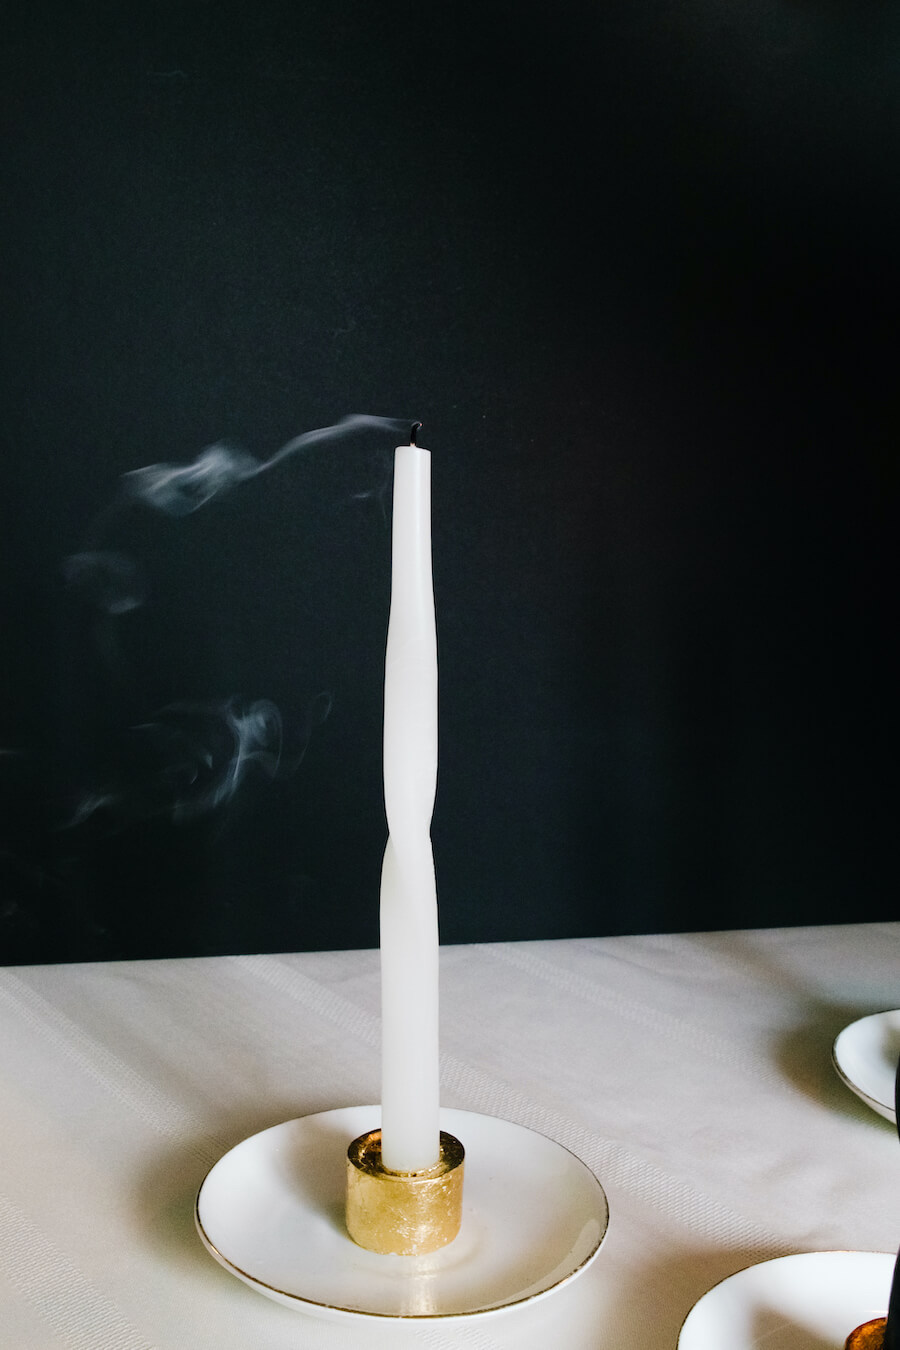 How to make TikTok twisted candle trend